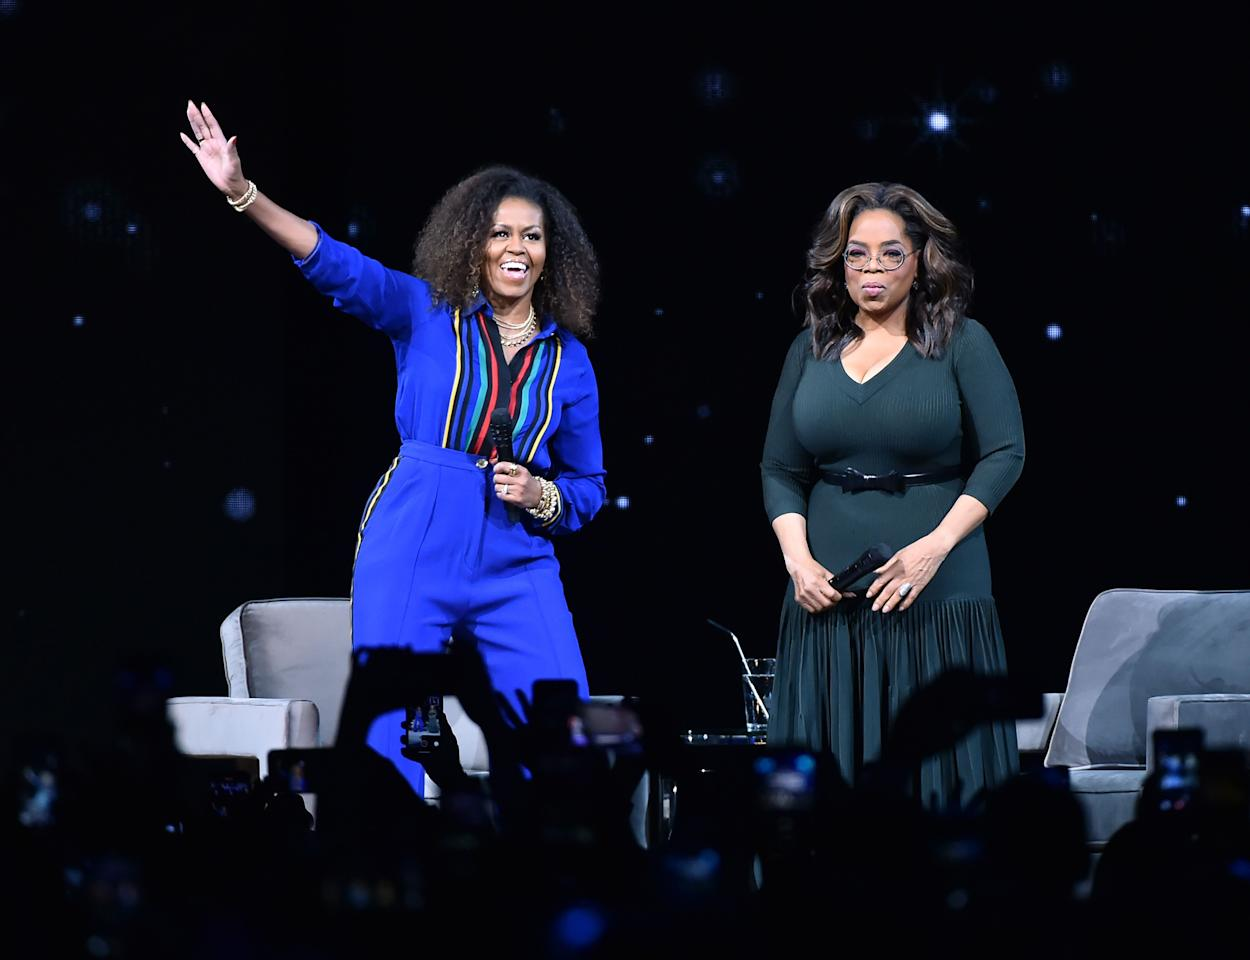 <p>As the former First Lady of the United States launches both her book and podcast, we look back at some of her wardrobe highlights. Whether she is promoting women's education in Asia or taking a casual stroll through Tribeca, dressed in a smart trouser suit or a floaty white summer dress, Mrs Obama is consistently elegant and chic. </p>